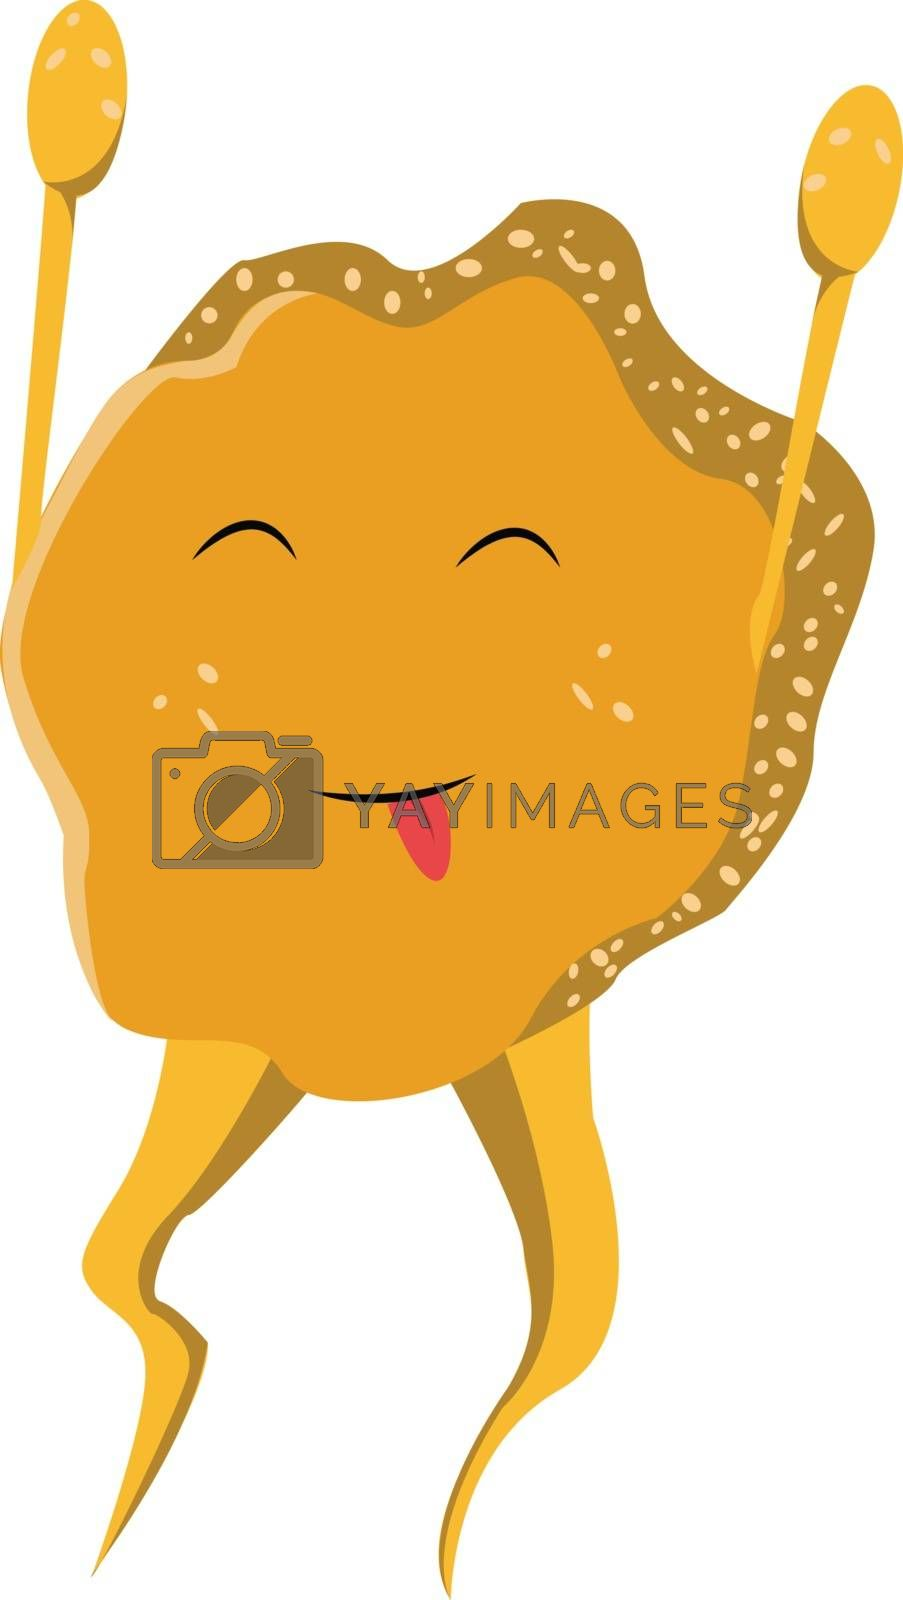 Royalty free image of Cartoon funny happy yellow monster vector or color illustration by Morphart